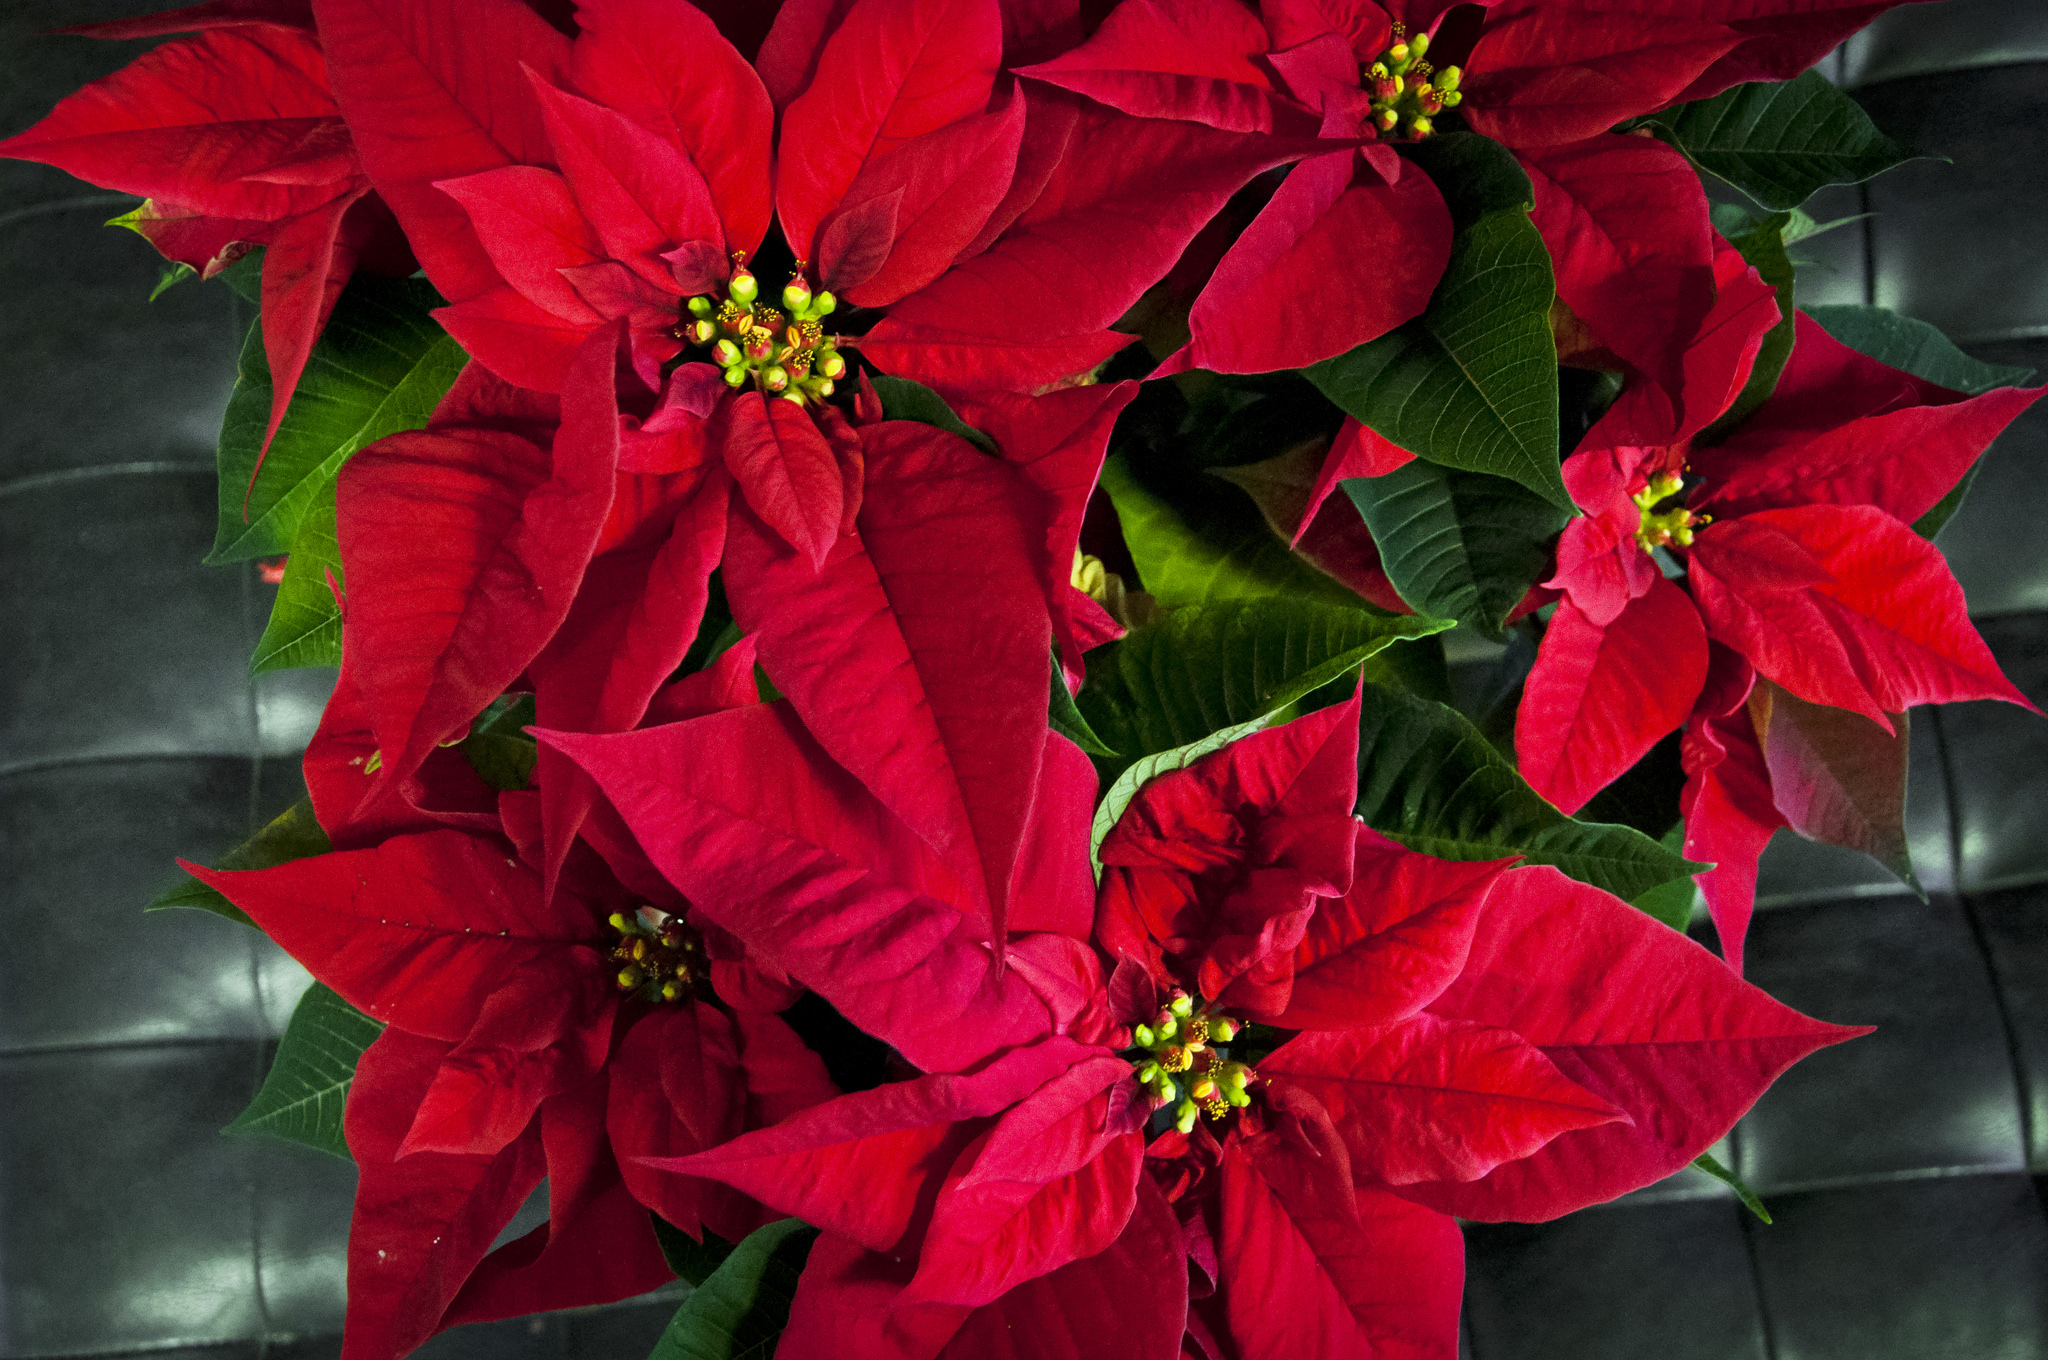 Bringing color back to your poinsettias